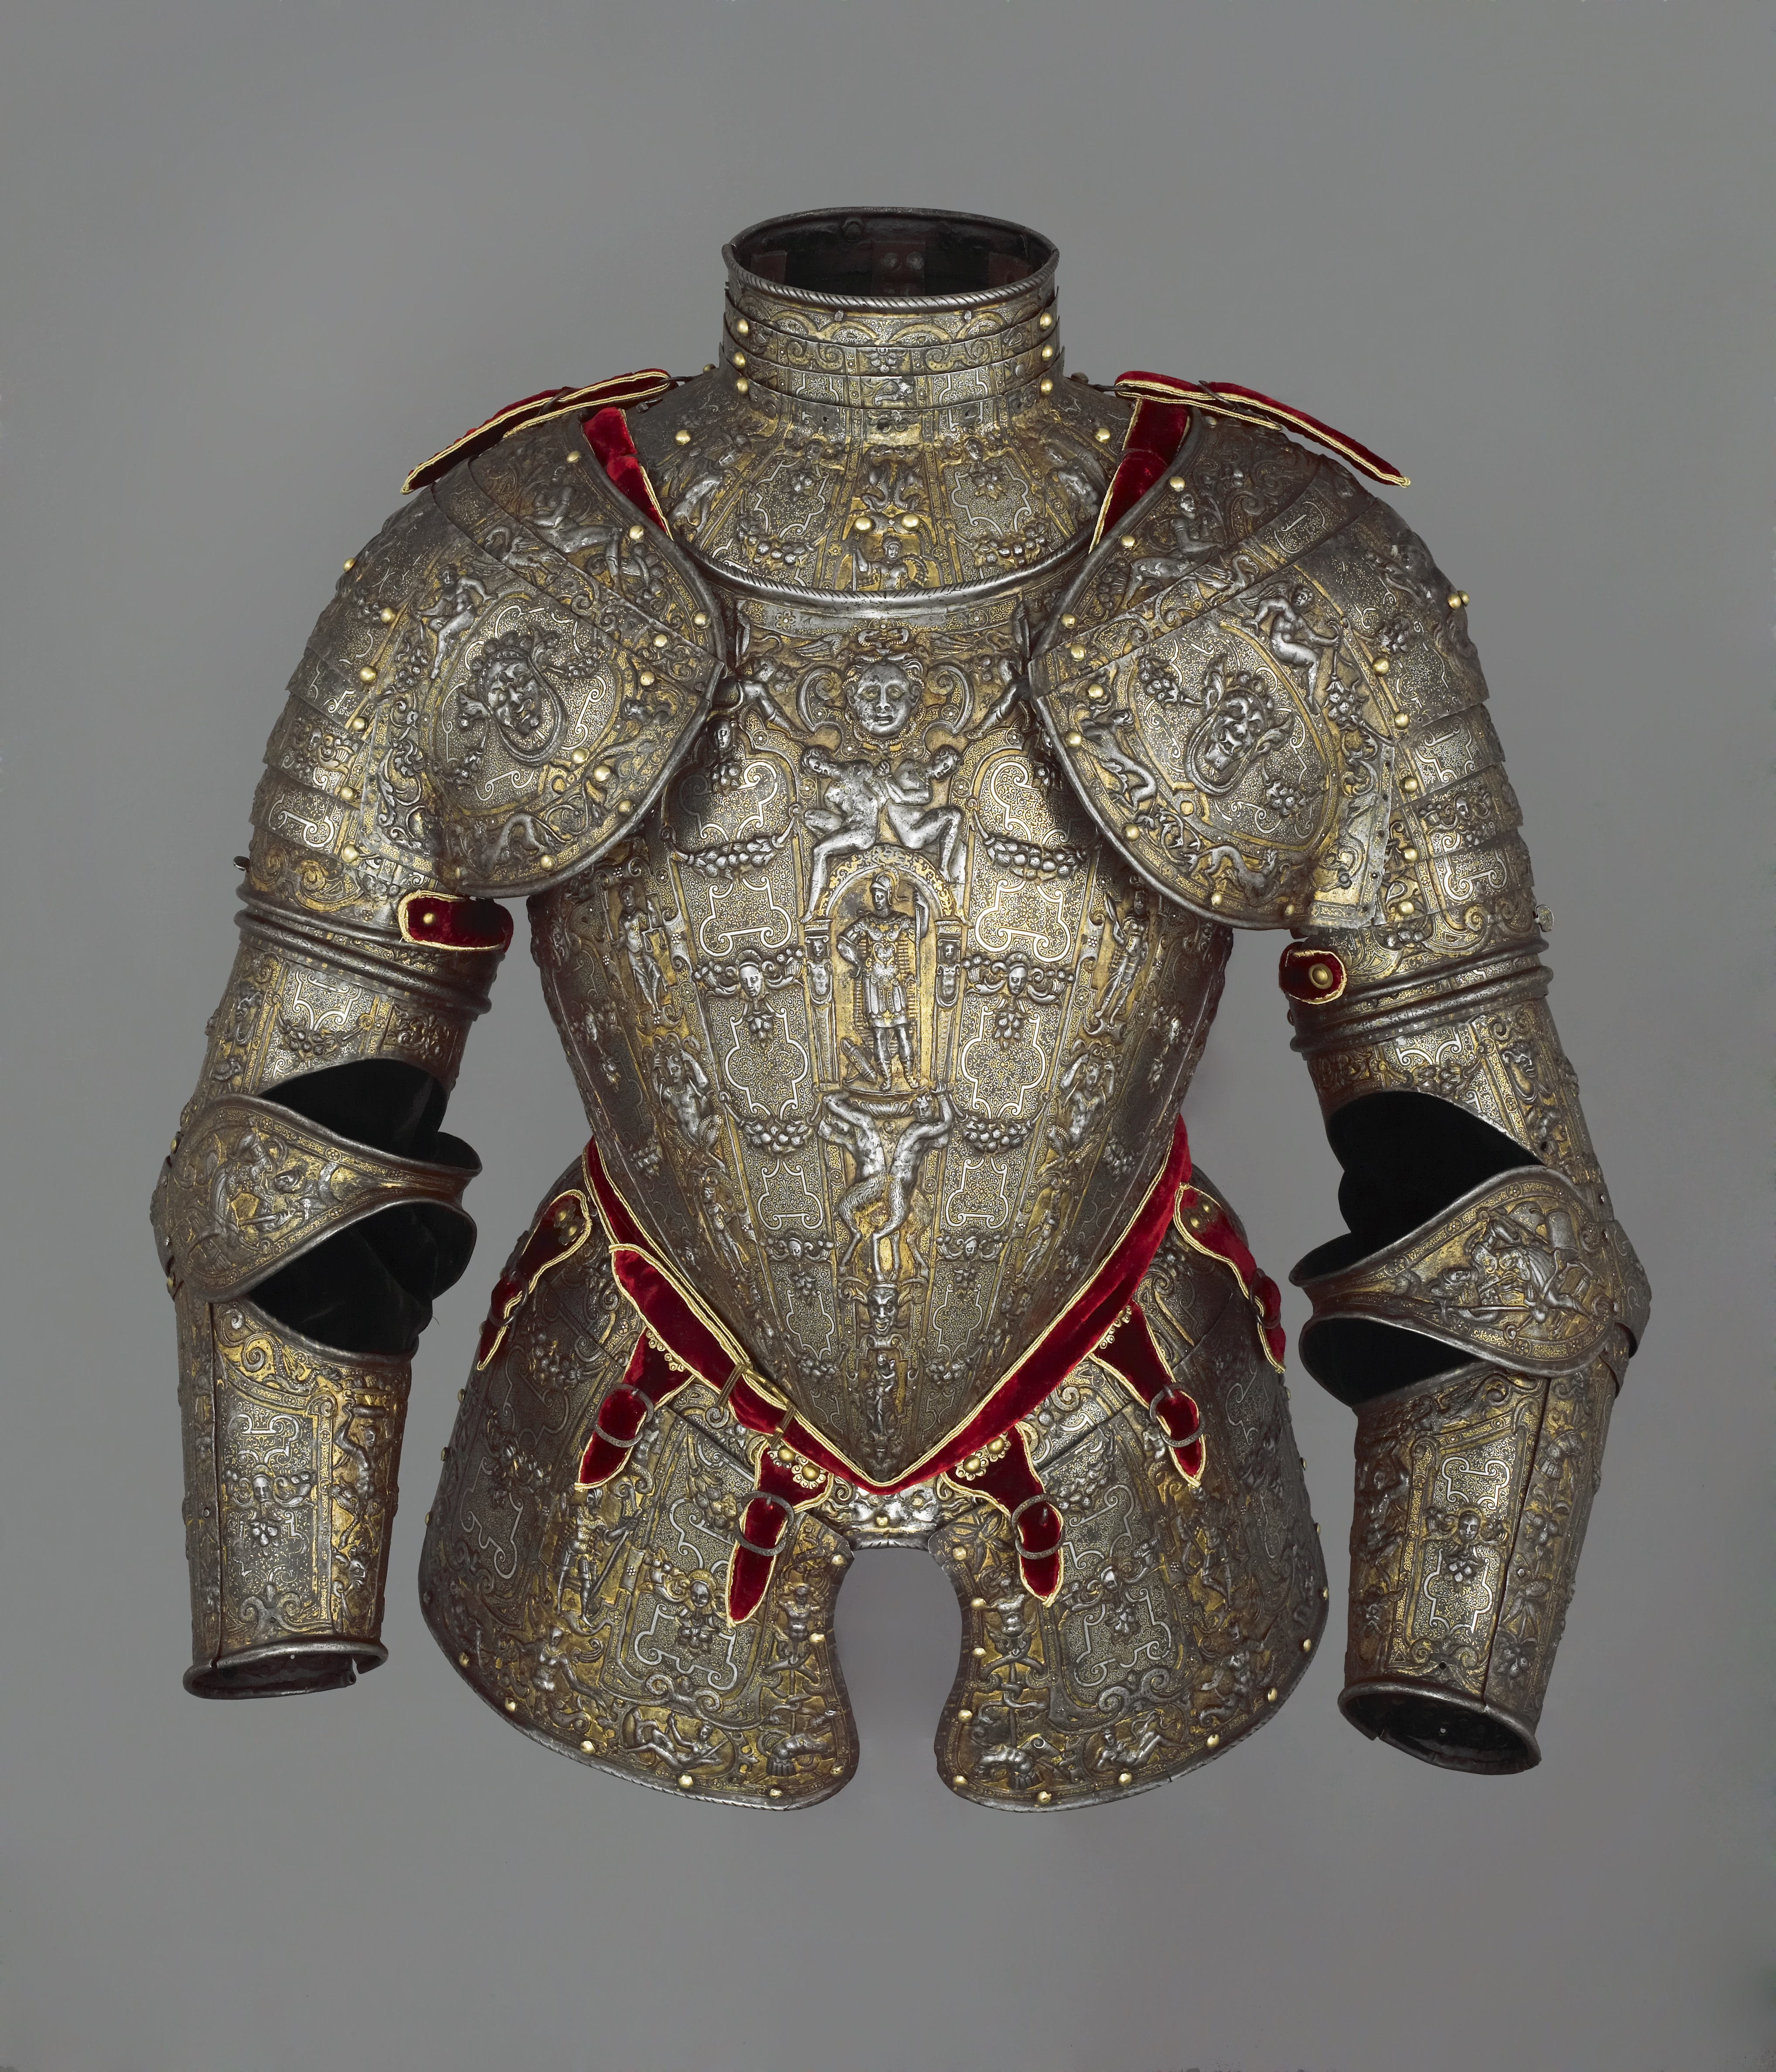 Lucio Marliani: Partial armour, Very low-carbon steel, gold, silver, copper alloy, leather, gold braid and velvet, embossed, gilt, blackened, and damascened, c. 1570-90 (London: Wallace Collection, Object No. A51); image courtesy of the Wallace Collection